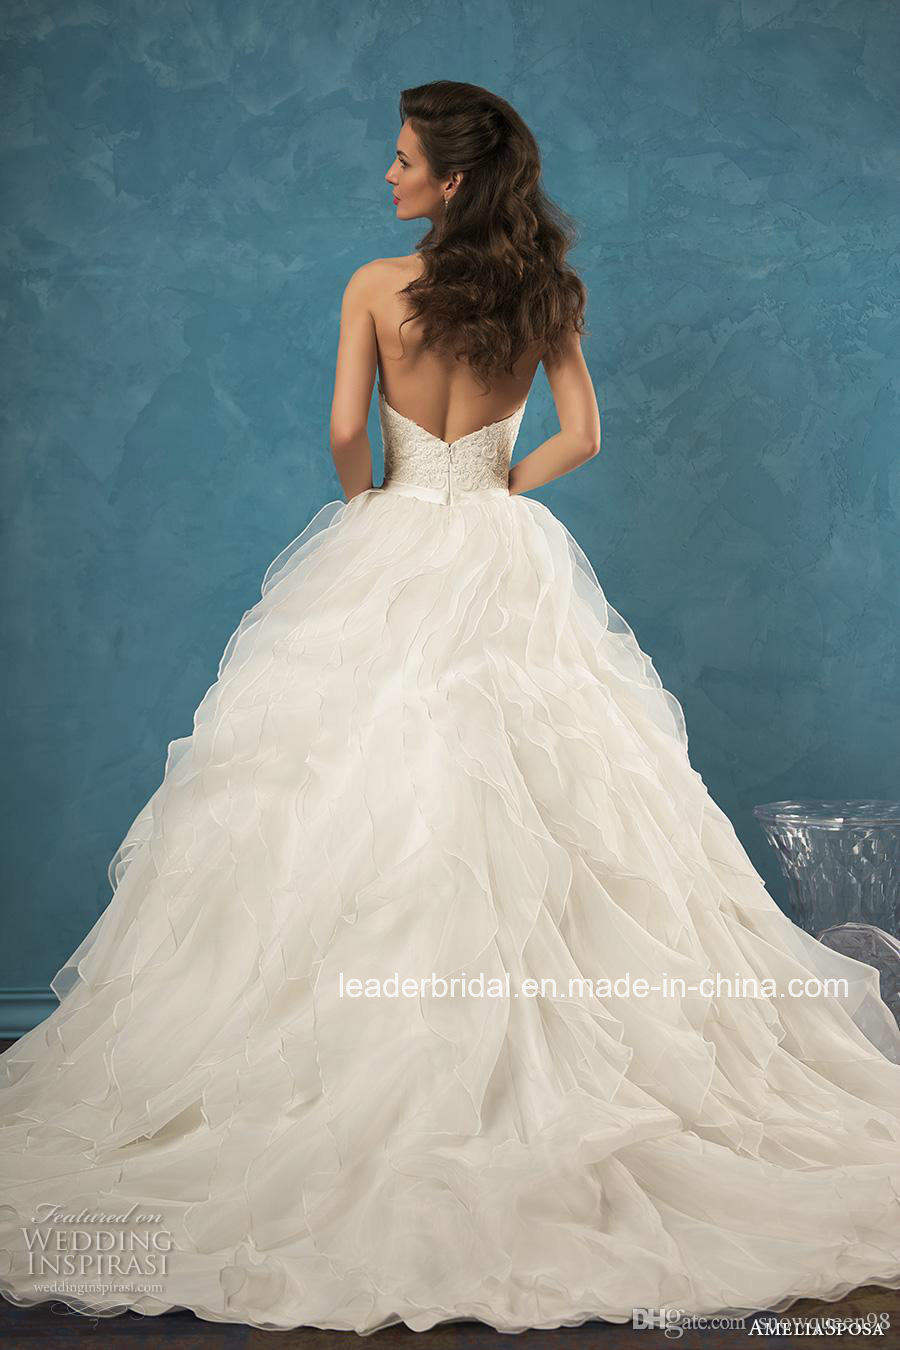 Amazing Bridal Gowns Johannesburg Mold - All Wedding Dresses ...